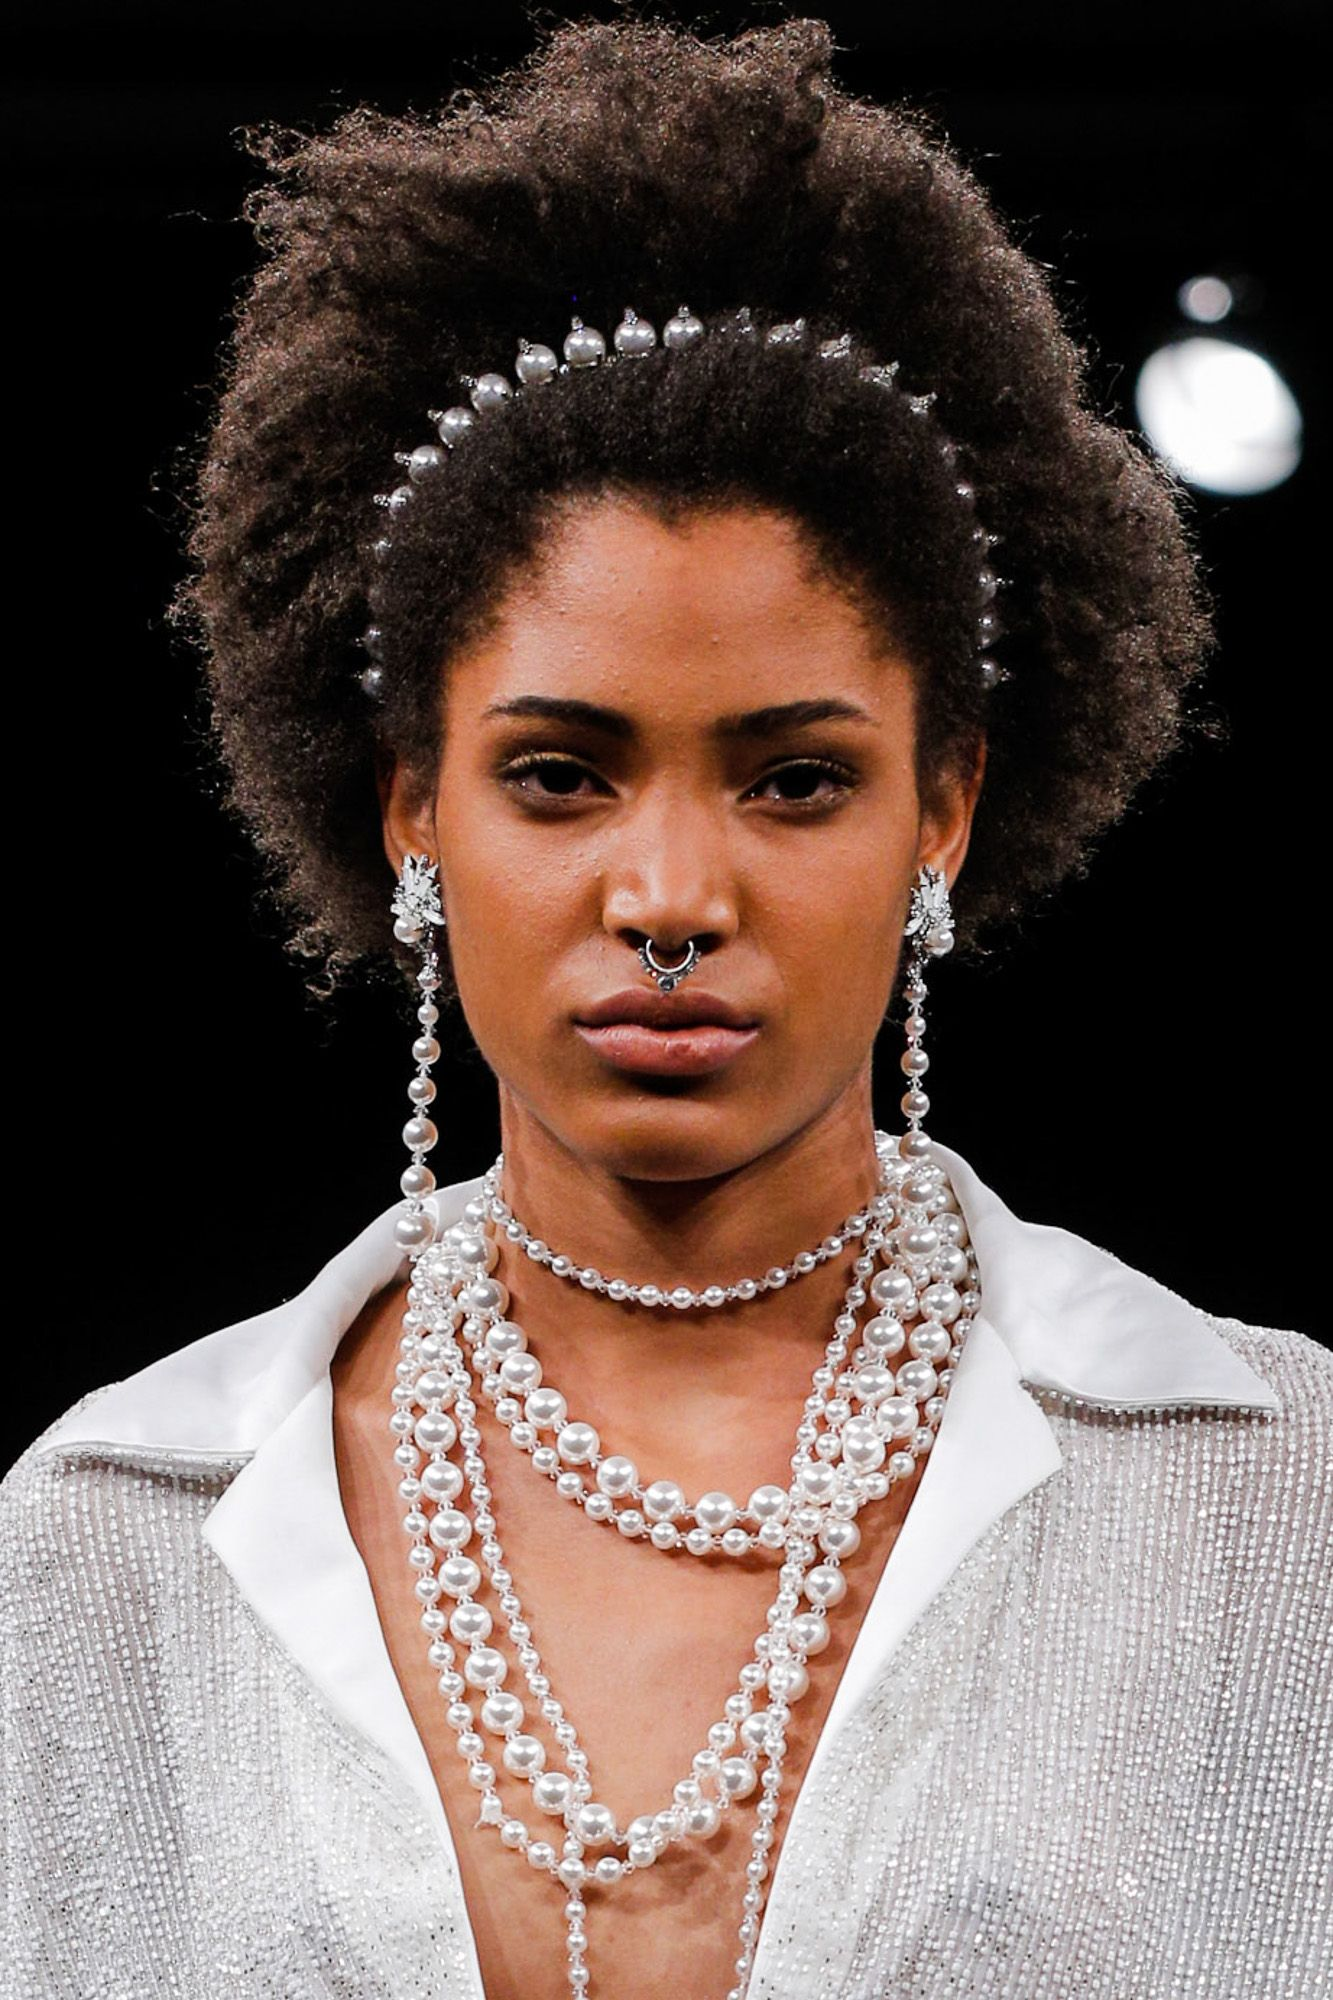 <p>Natural texture for your wedding day? Hell yes. Dress up the lookbridal style with a jewelled headband.</p>